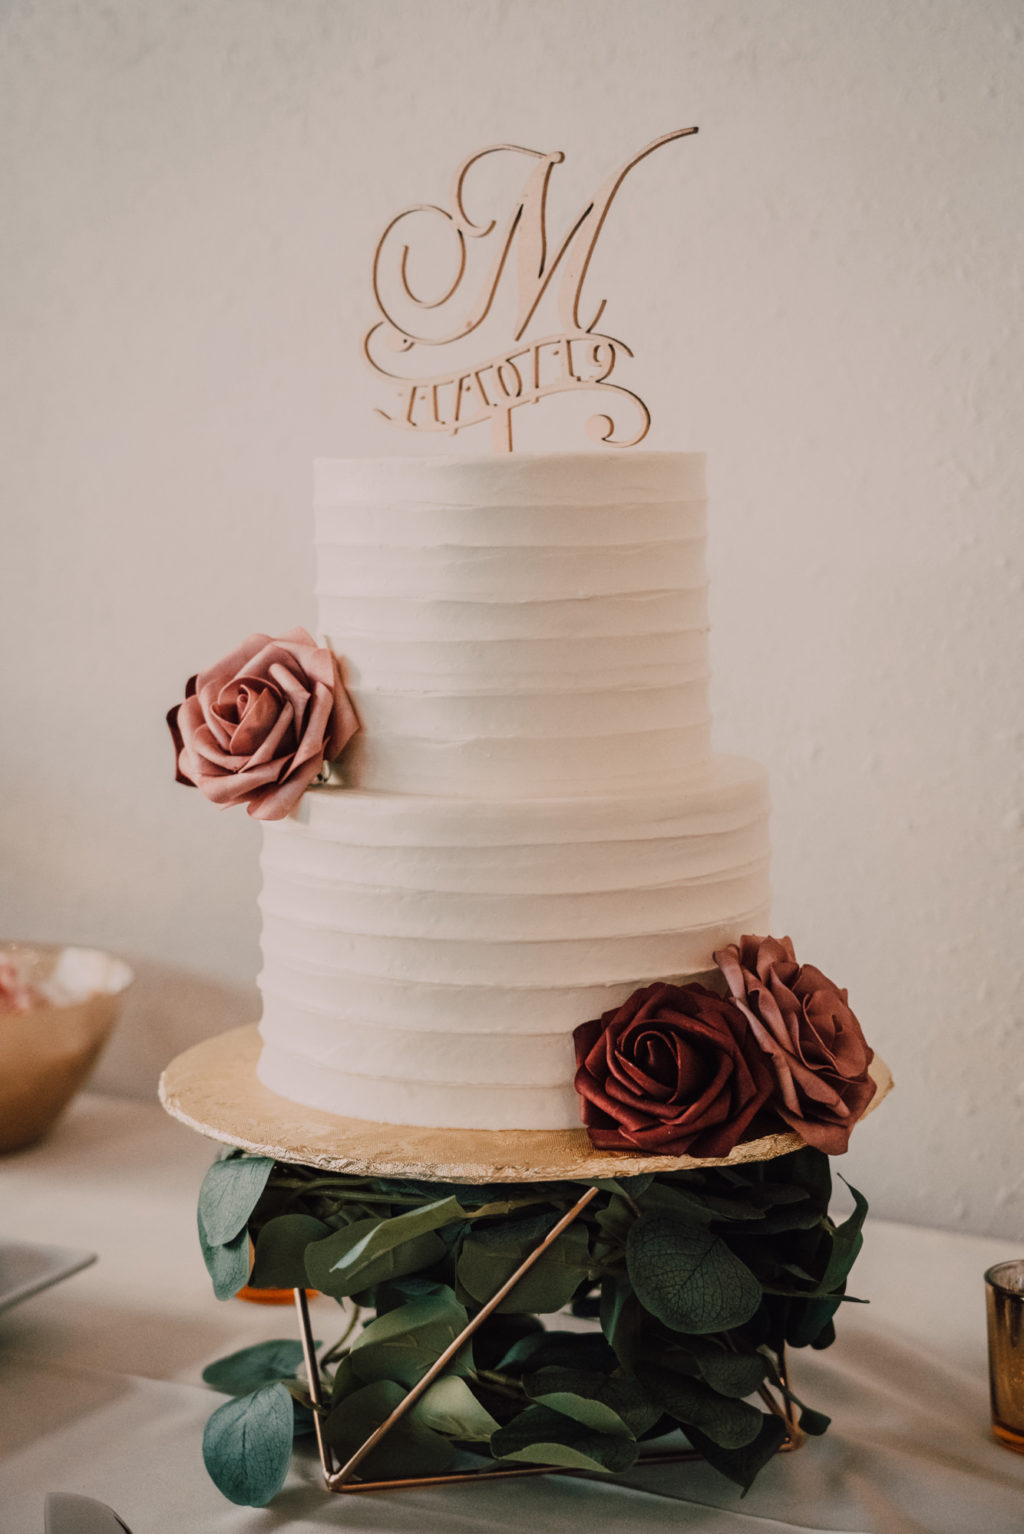 Simple Two Tier Wedding Cake with Ribbed Buttercream Icing on Gold Geometric Cake Stand with Burgundy and Blush Pink Roses and Die Cut Monogram Cake Topper